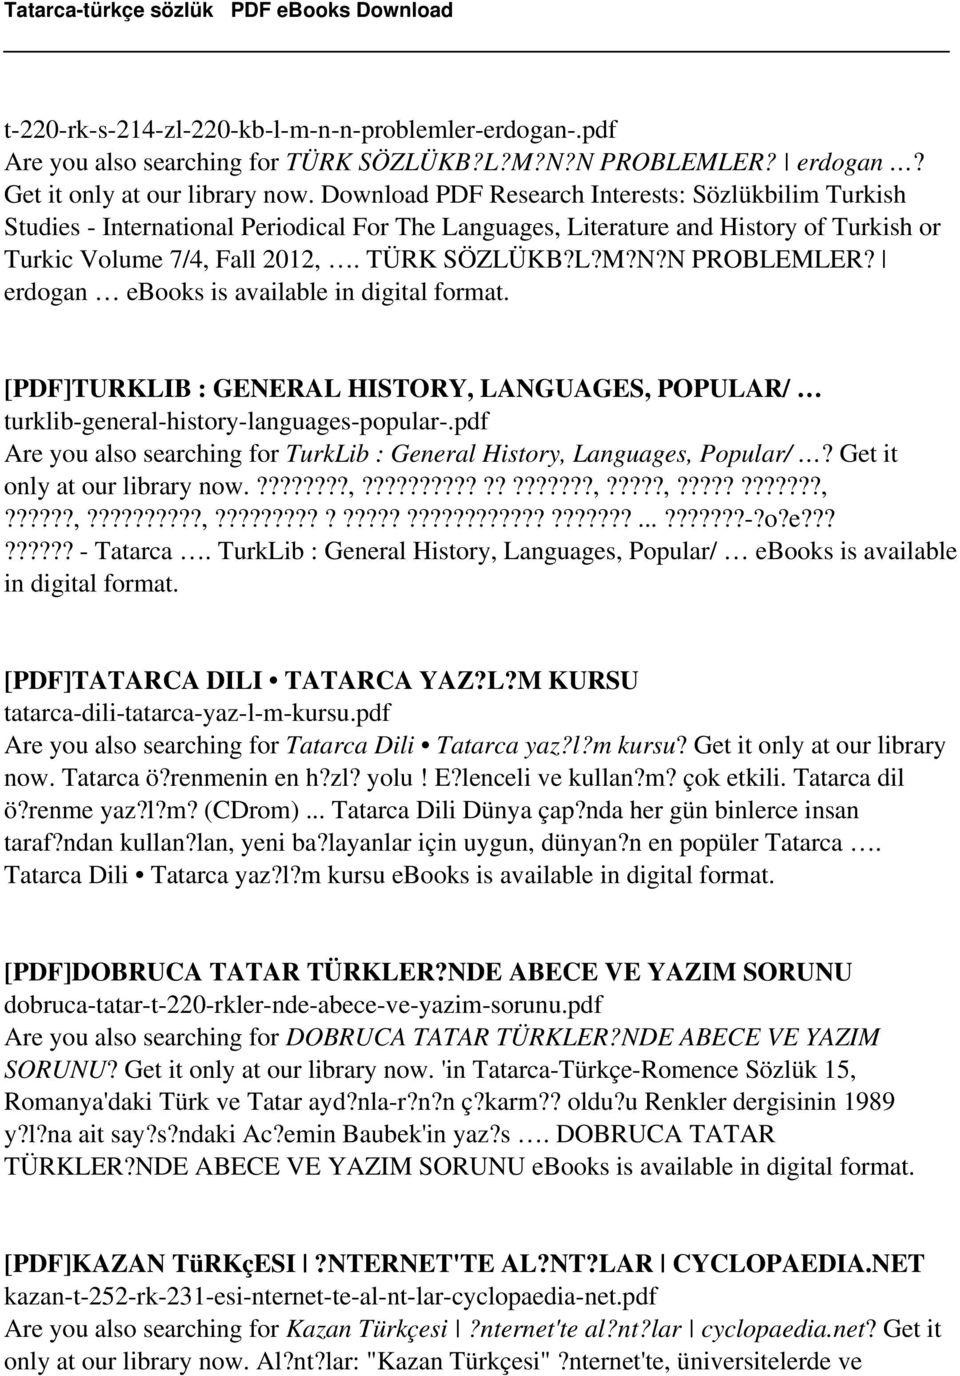 N PROBLEMLER? erdogan ebooks is [PDF]TURKLIB : GENERAL HISTORY, LANGUAGES, POPULAR/ turklib-general-history-languages-popular-.